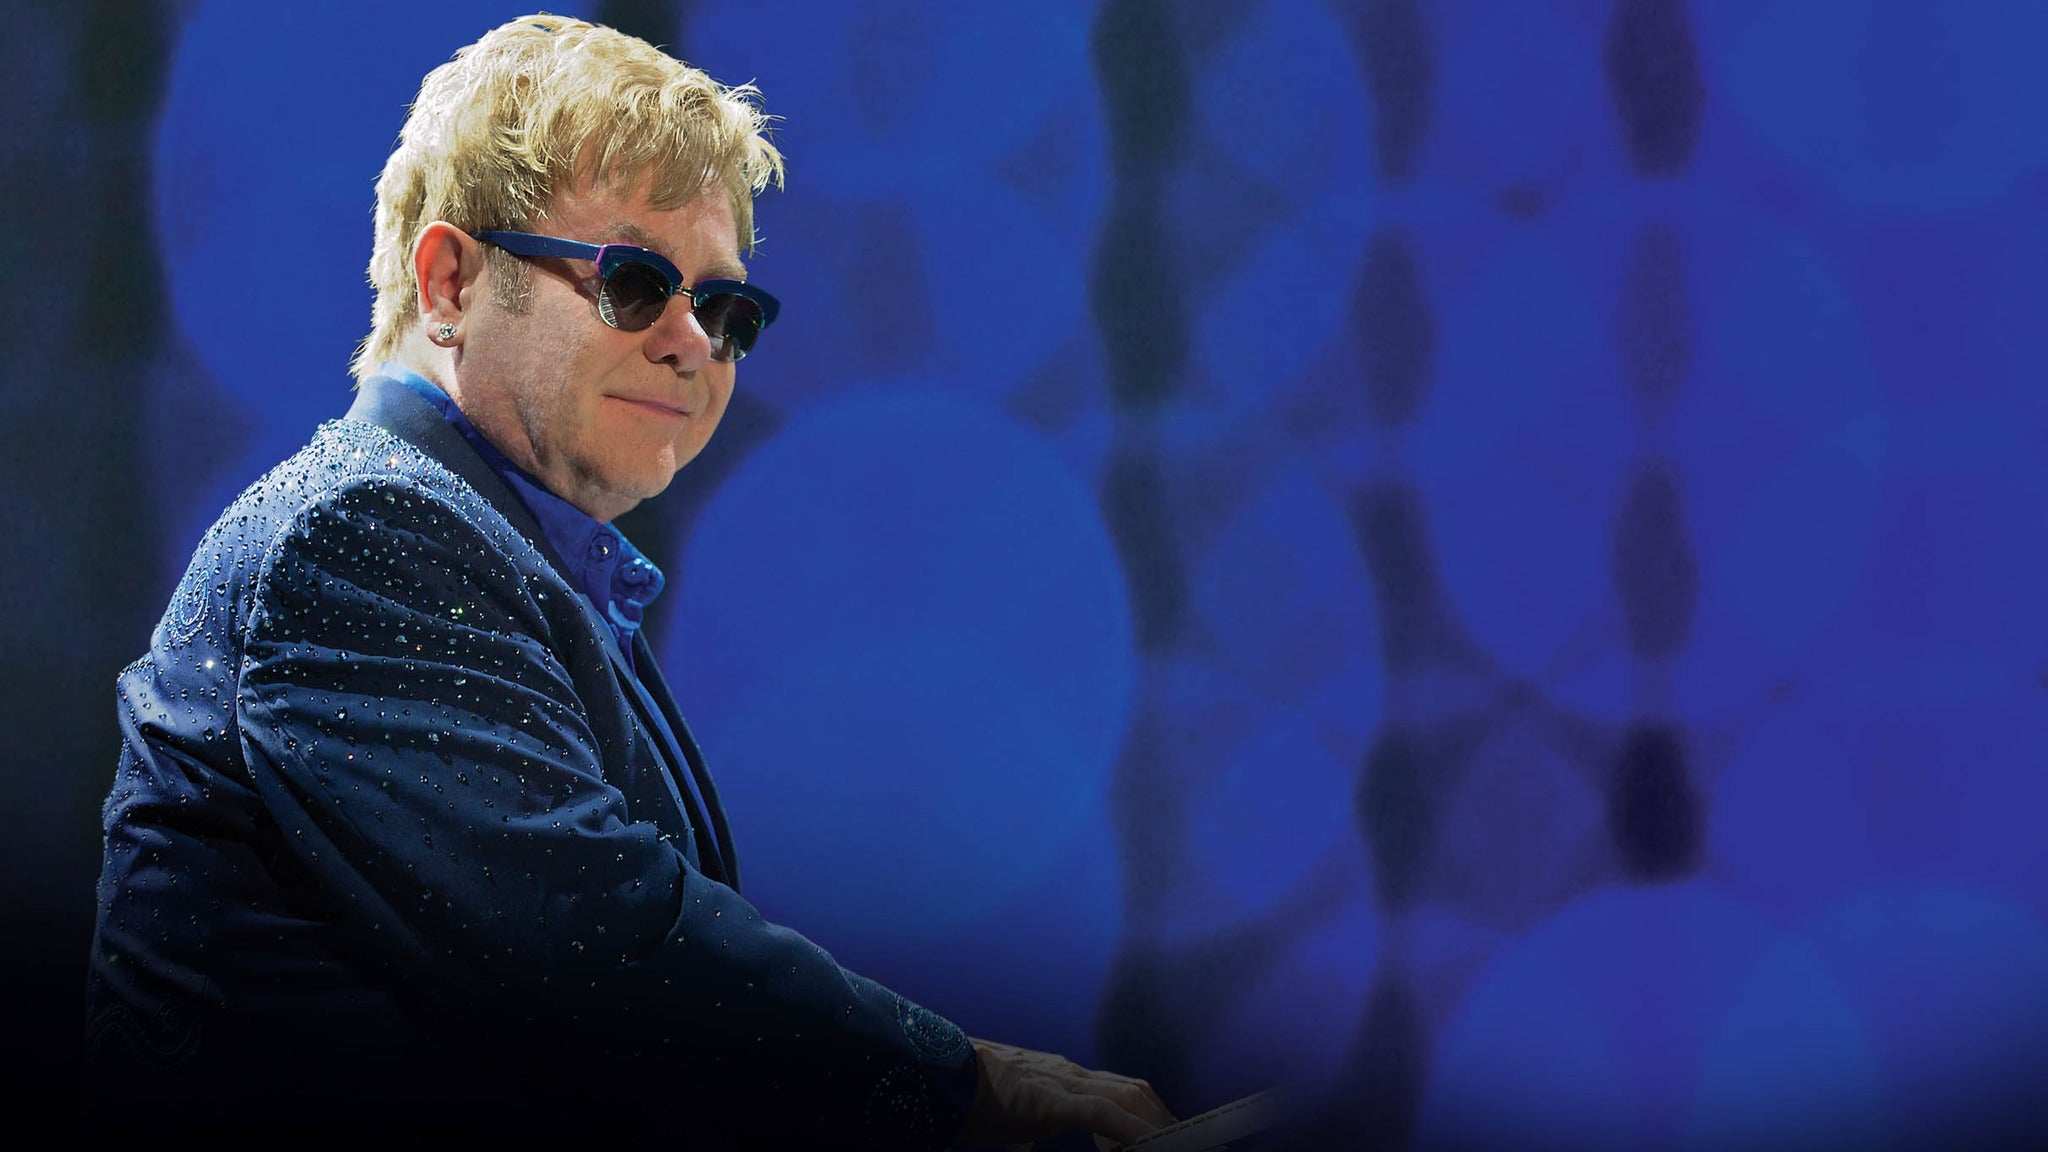 Elton John With His Band at Ford Center